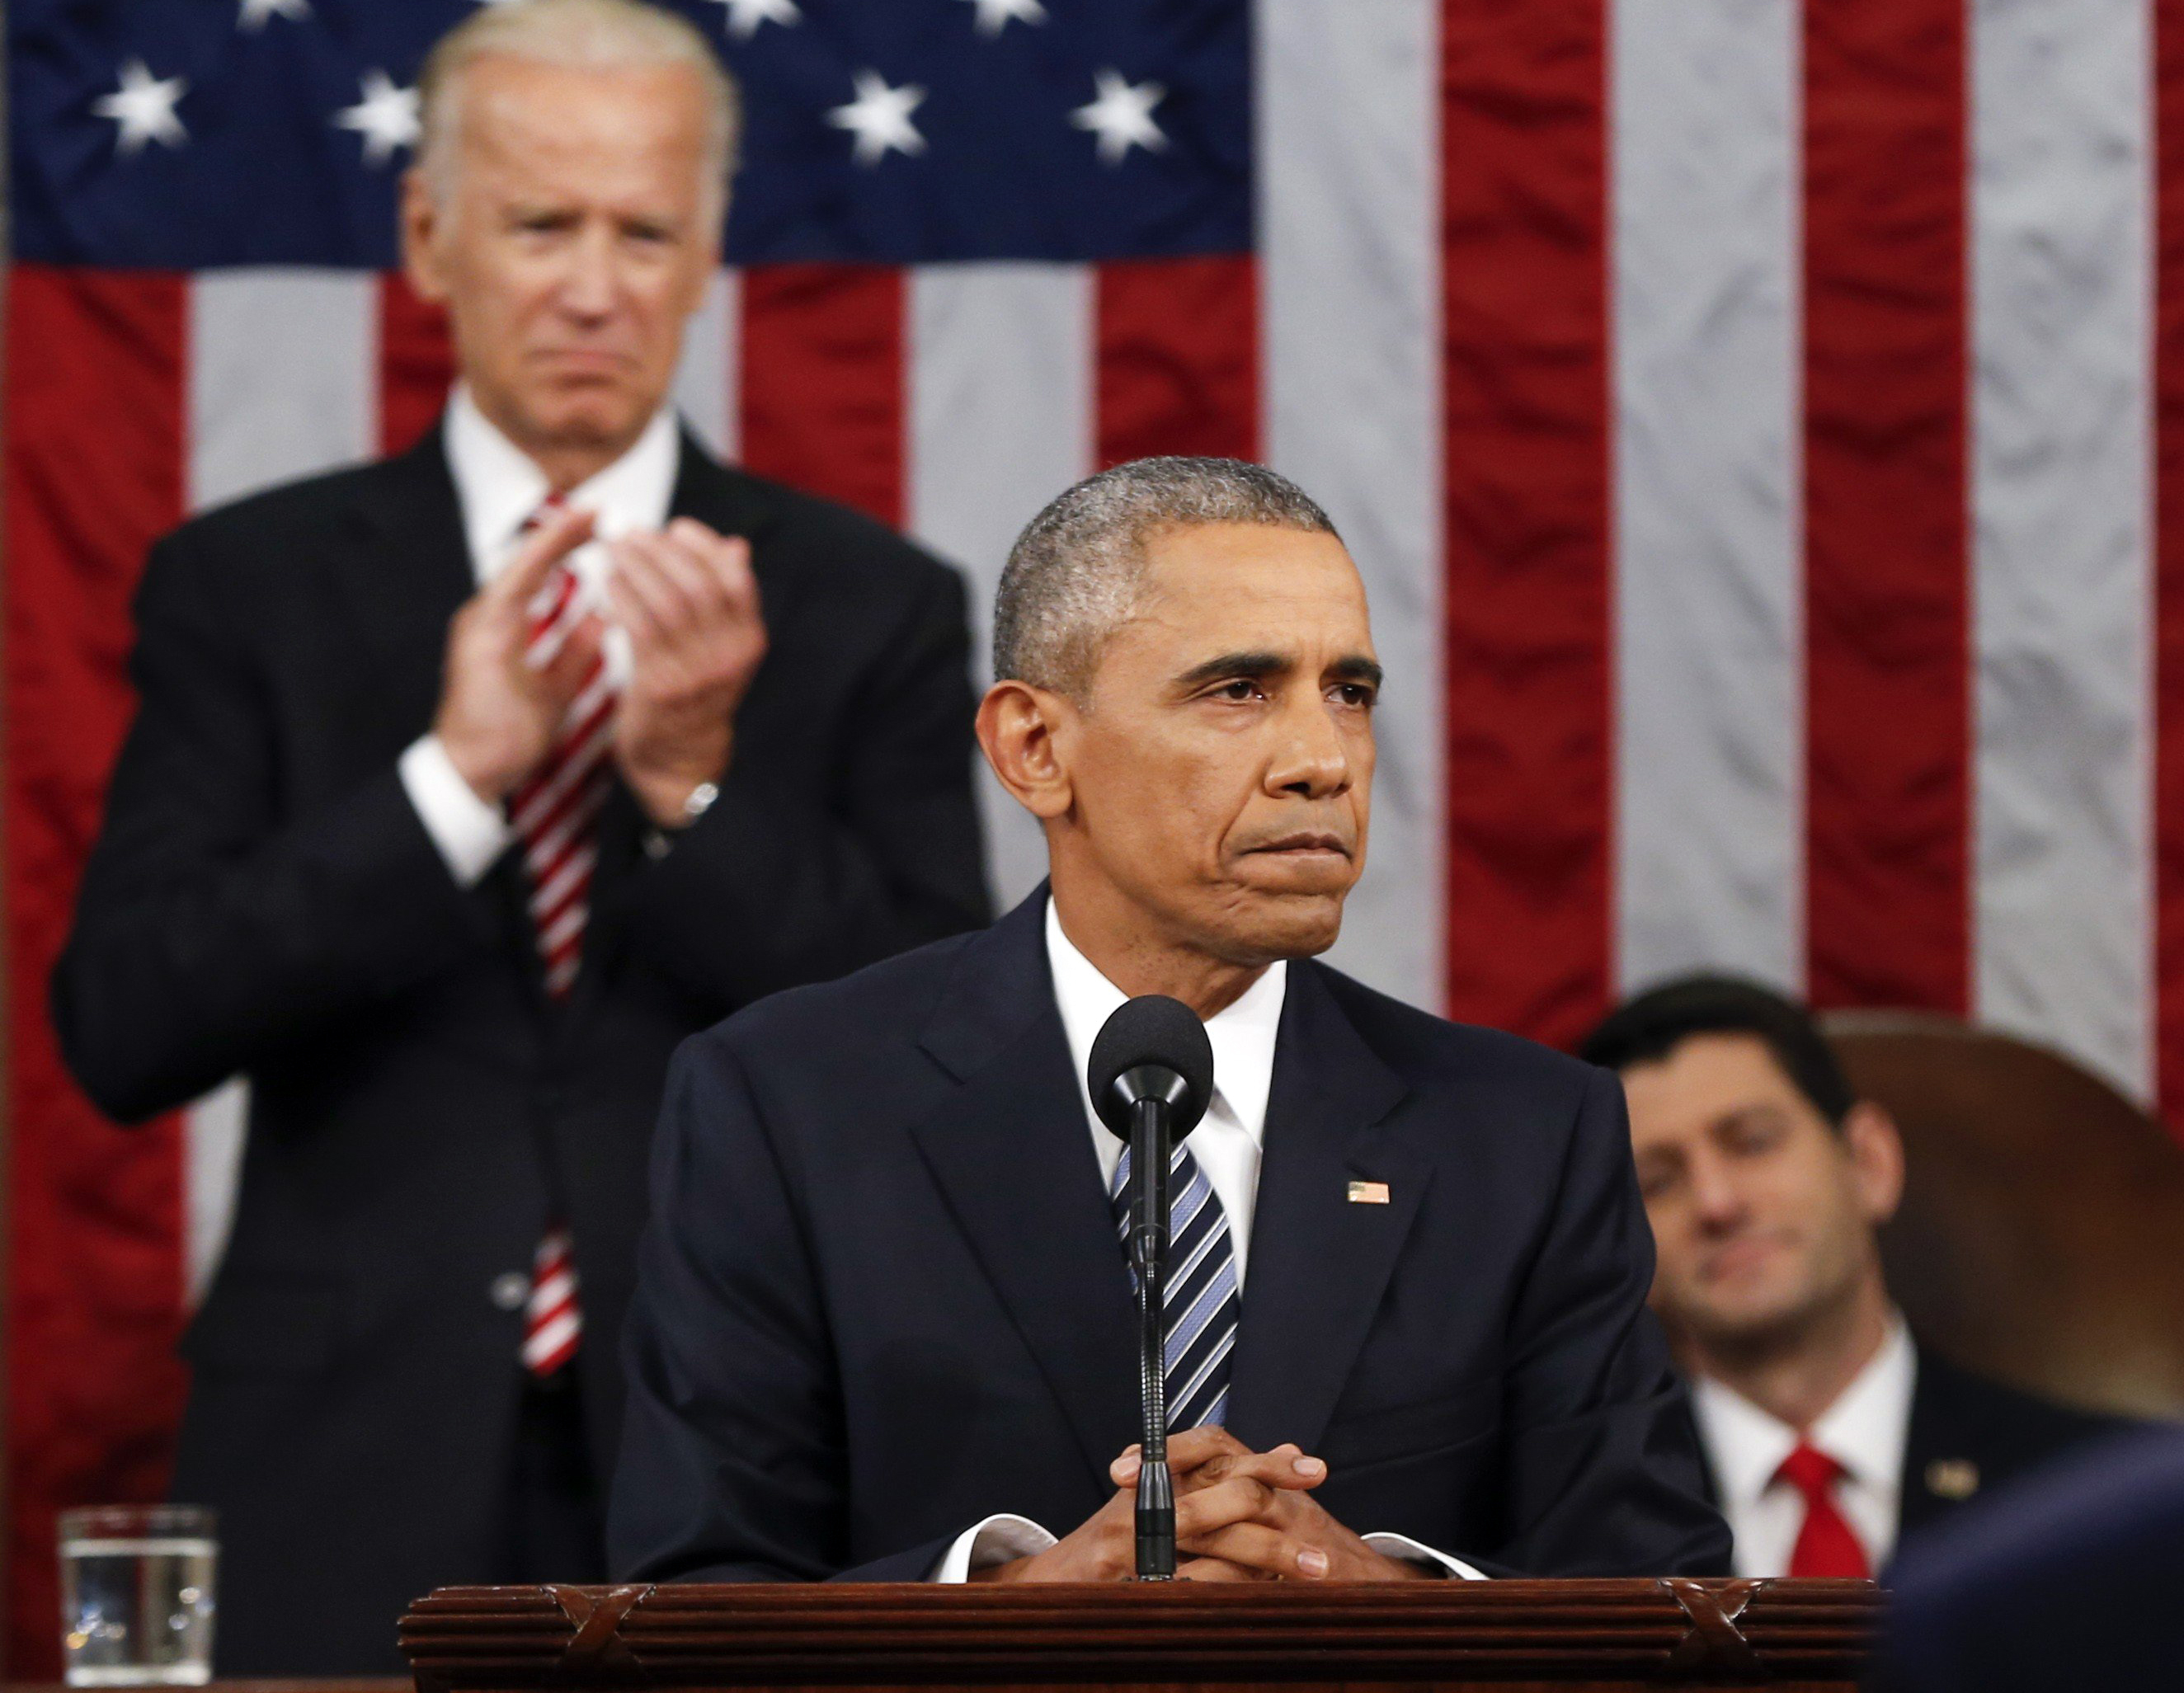 President Barack Obama delivers the State of the Union address before a joint session of Congress on Capitol Hill in Washington, Tuesday, Jan. 12, 2016.